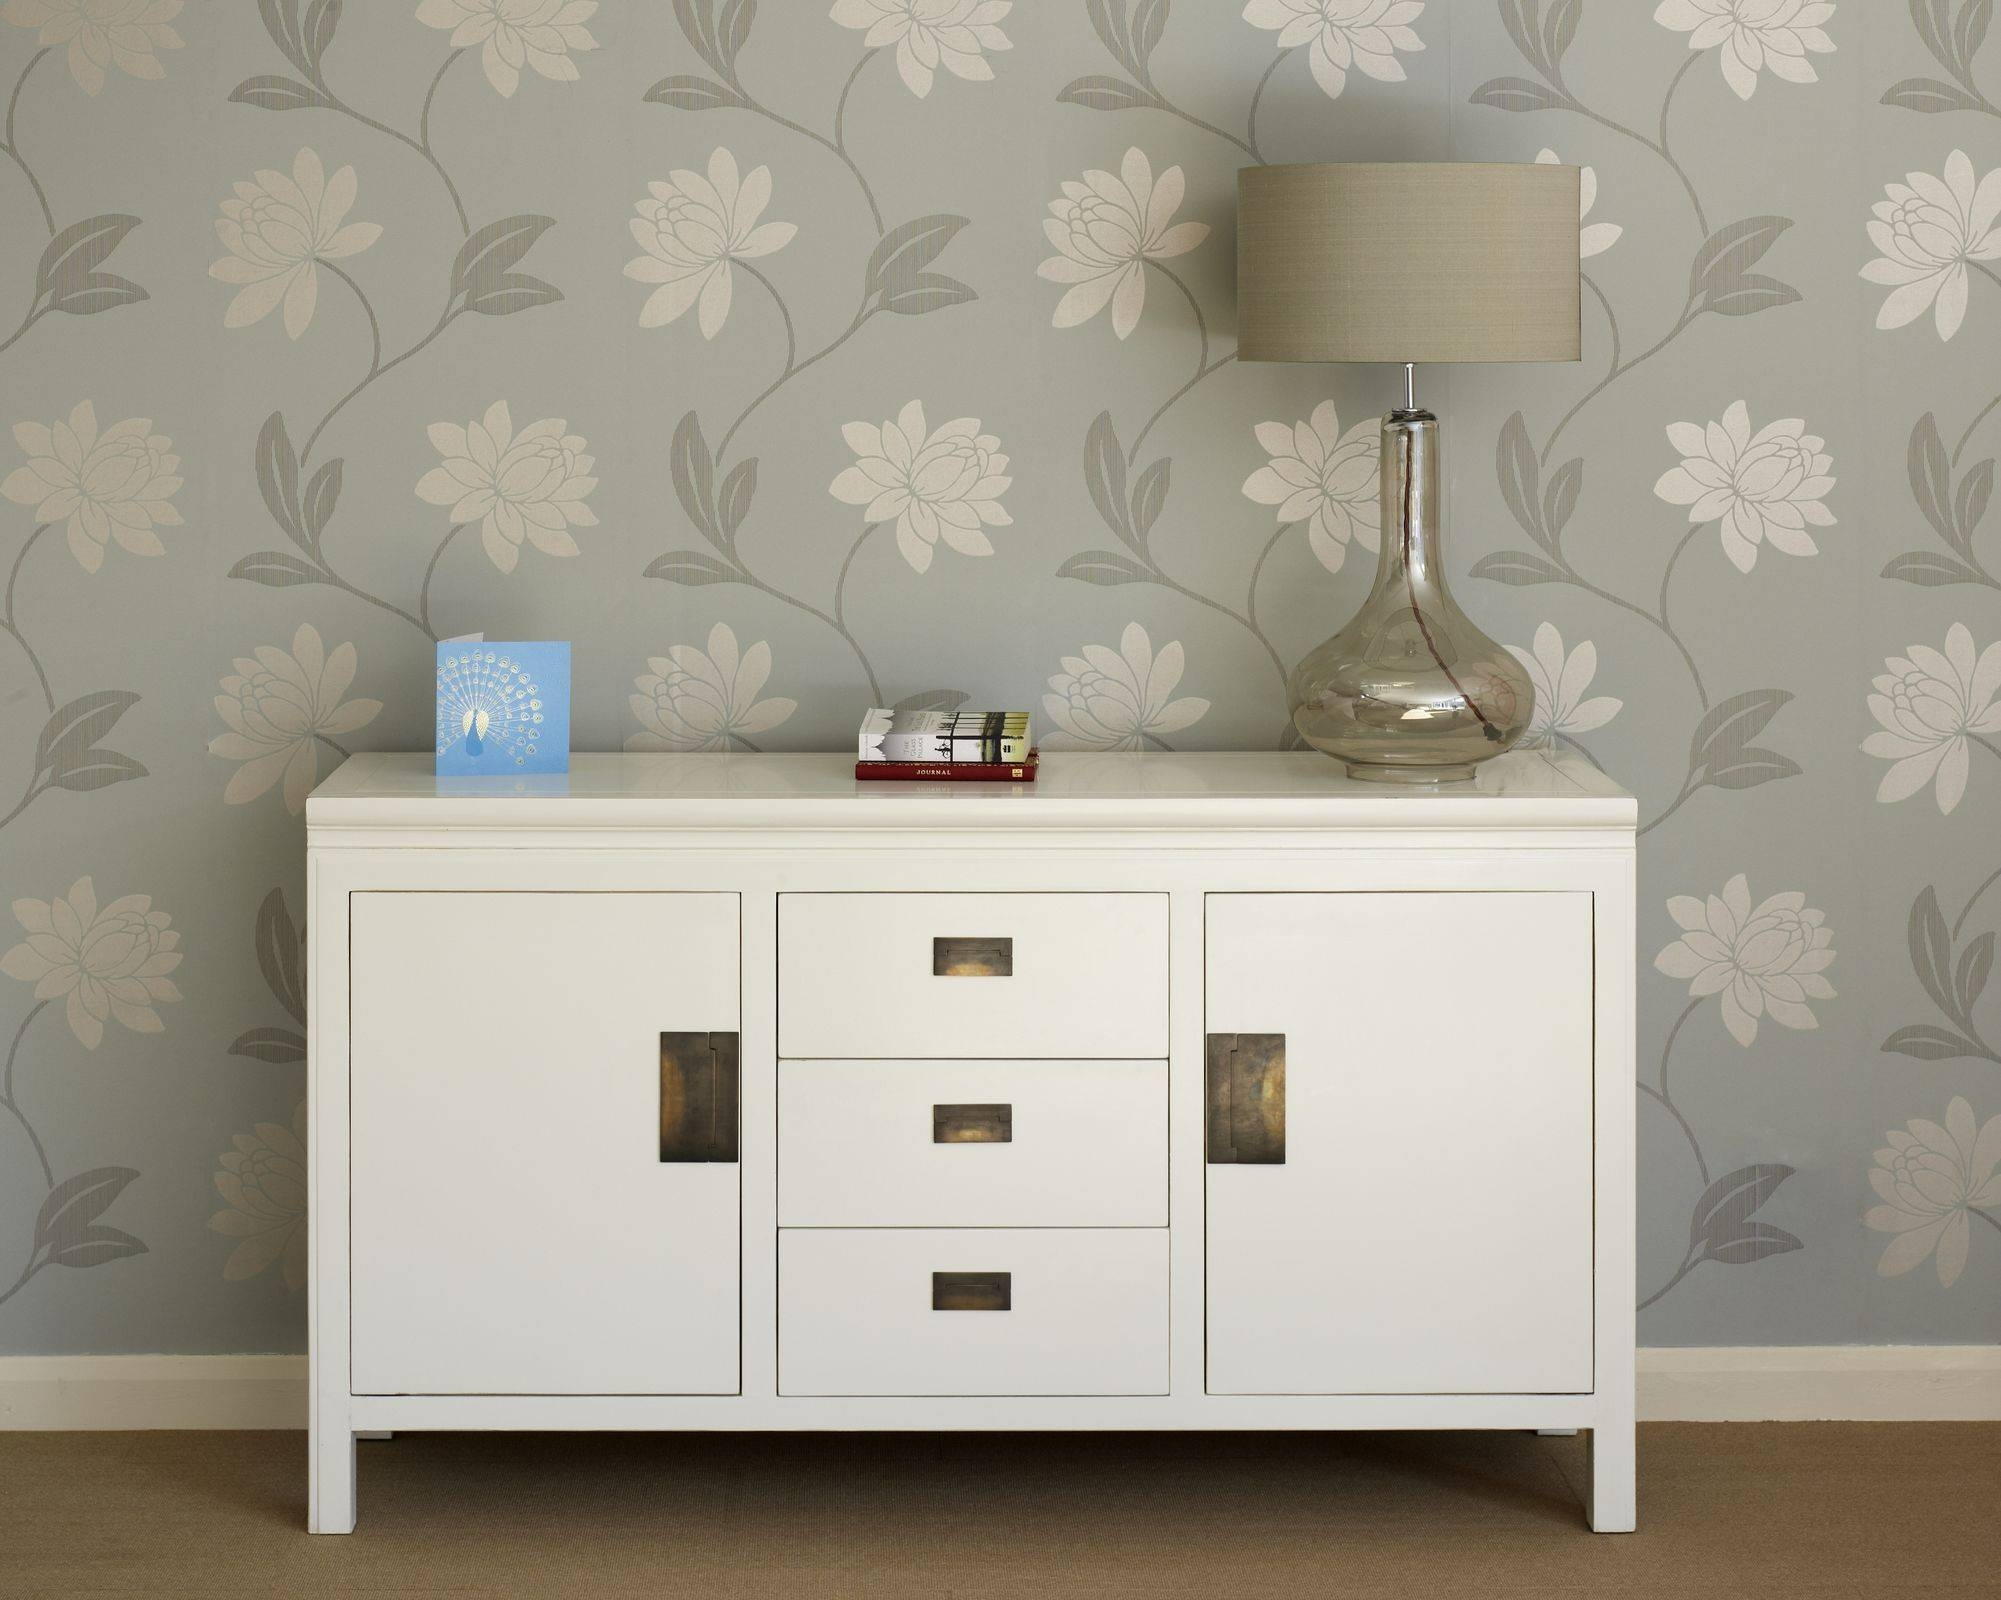 Oriental White Lacquer Sideboards - Shanxi with regard to Large White Sideboards (Image 14 of 30)